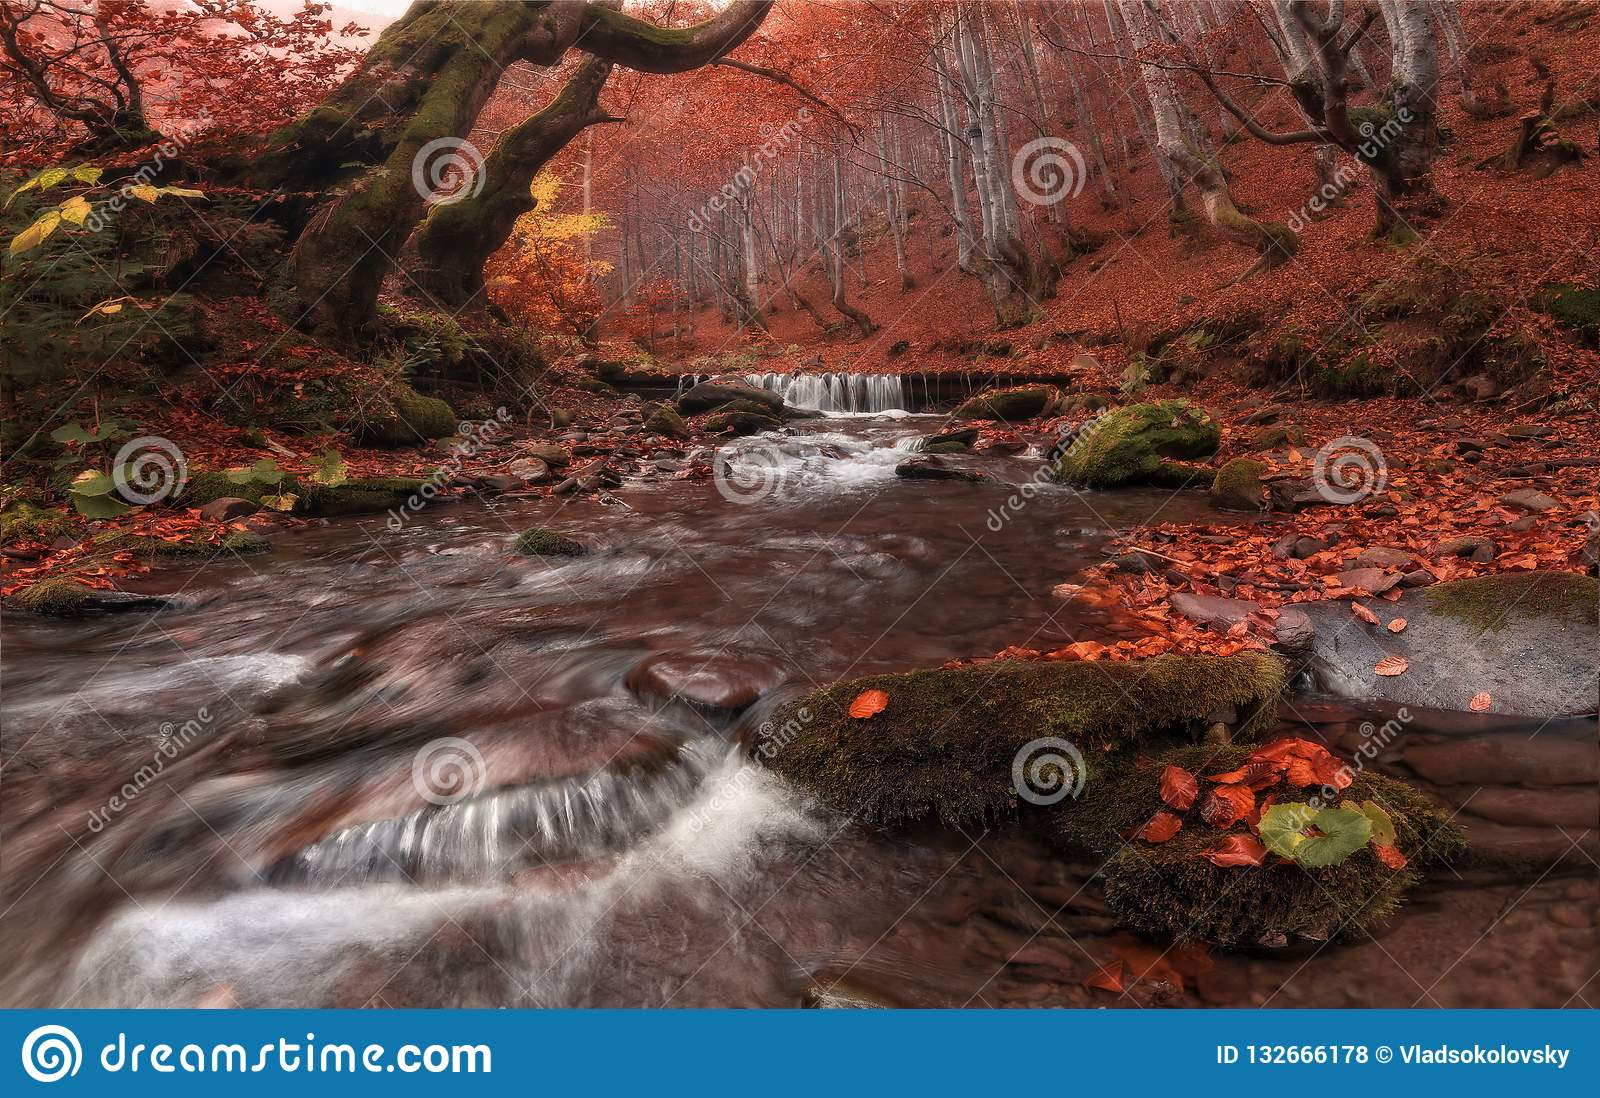 Fall Stream: Great Autumn Beech Forest Landscape In Red Color With Beautiful Mountain Creek And Misty Grey Forest. Enchanted Autum